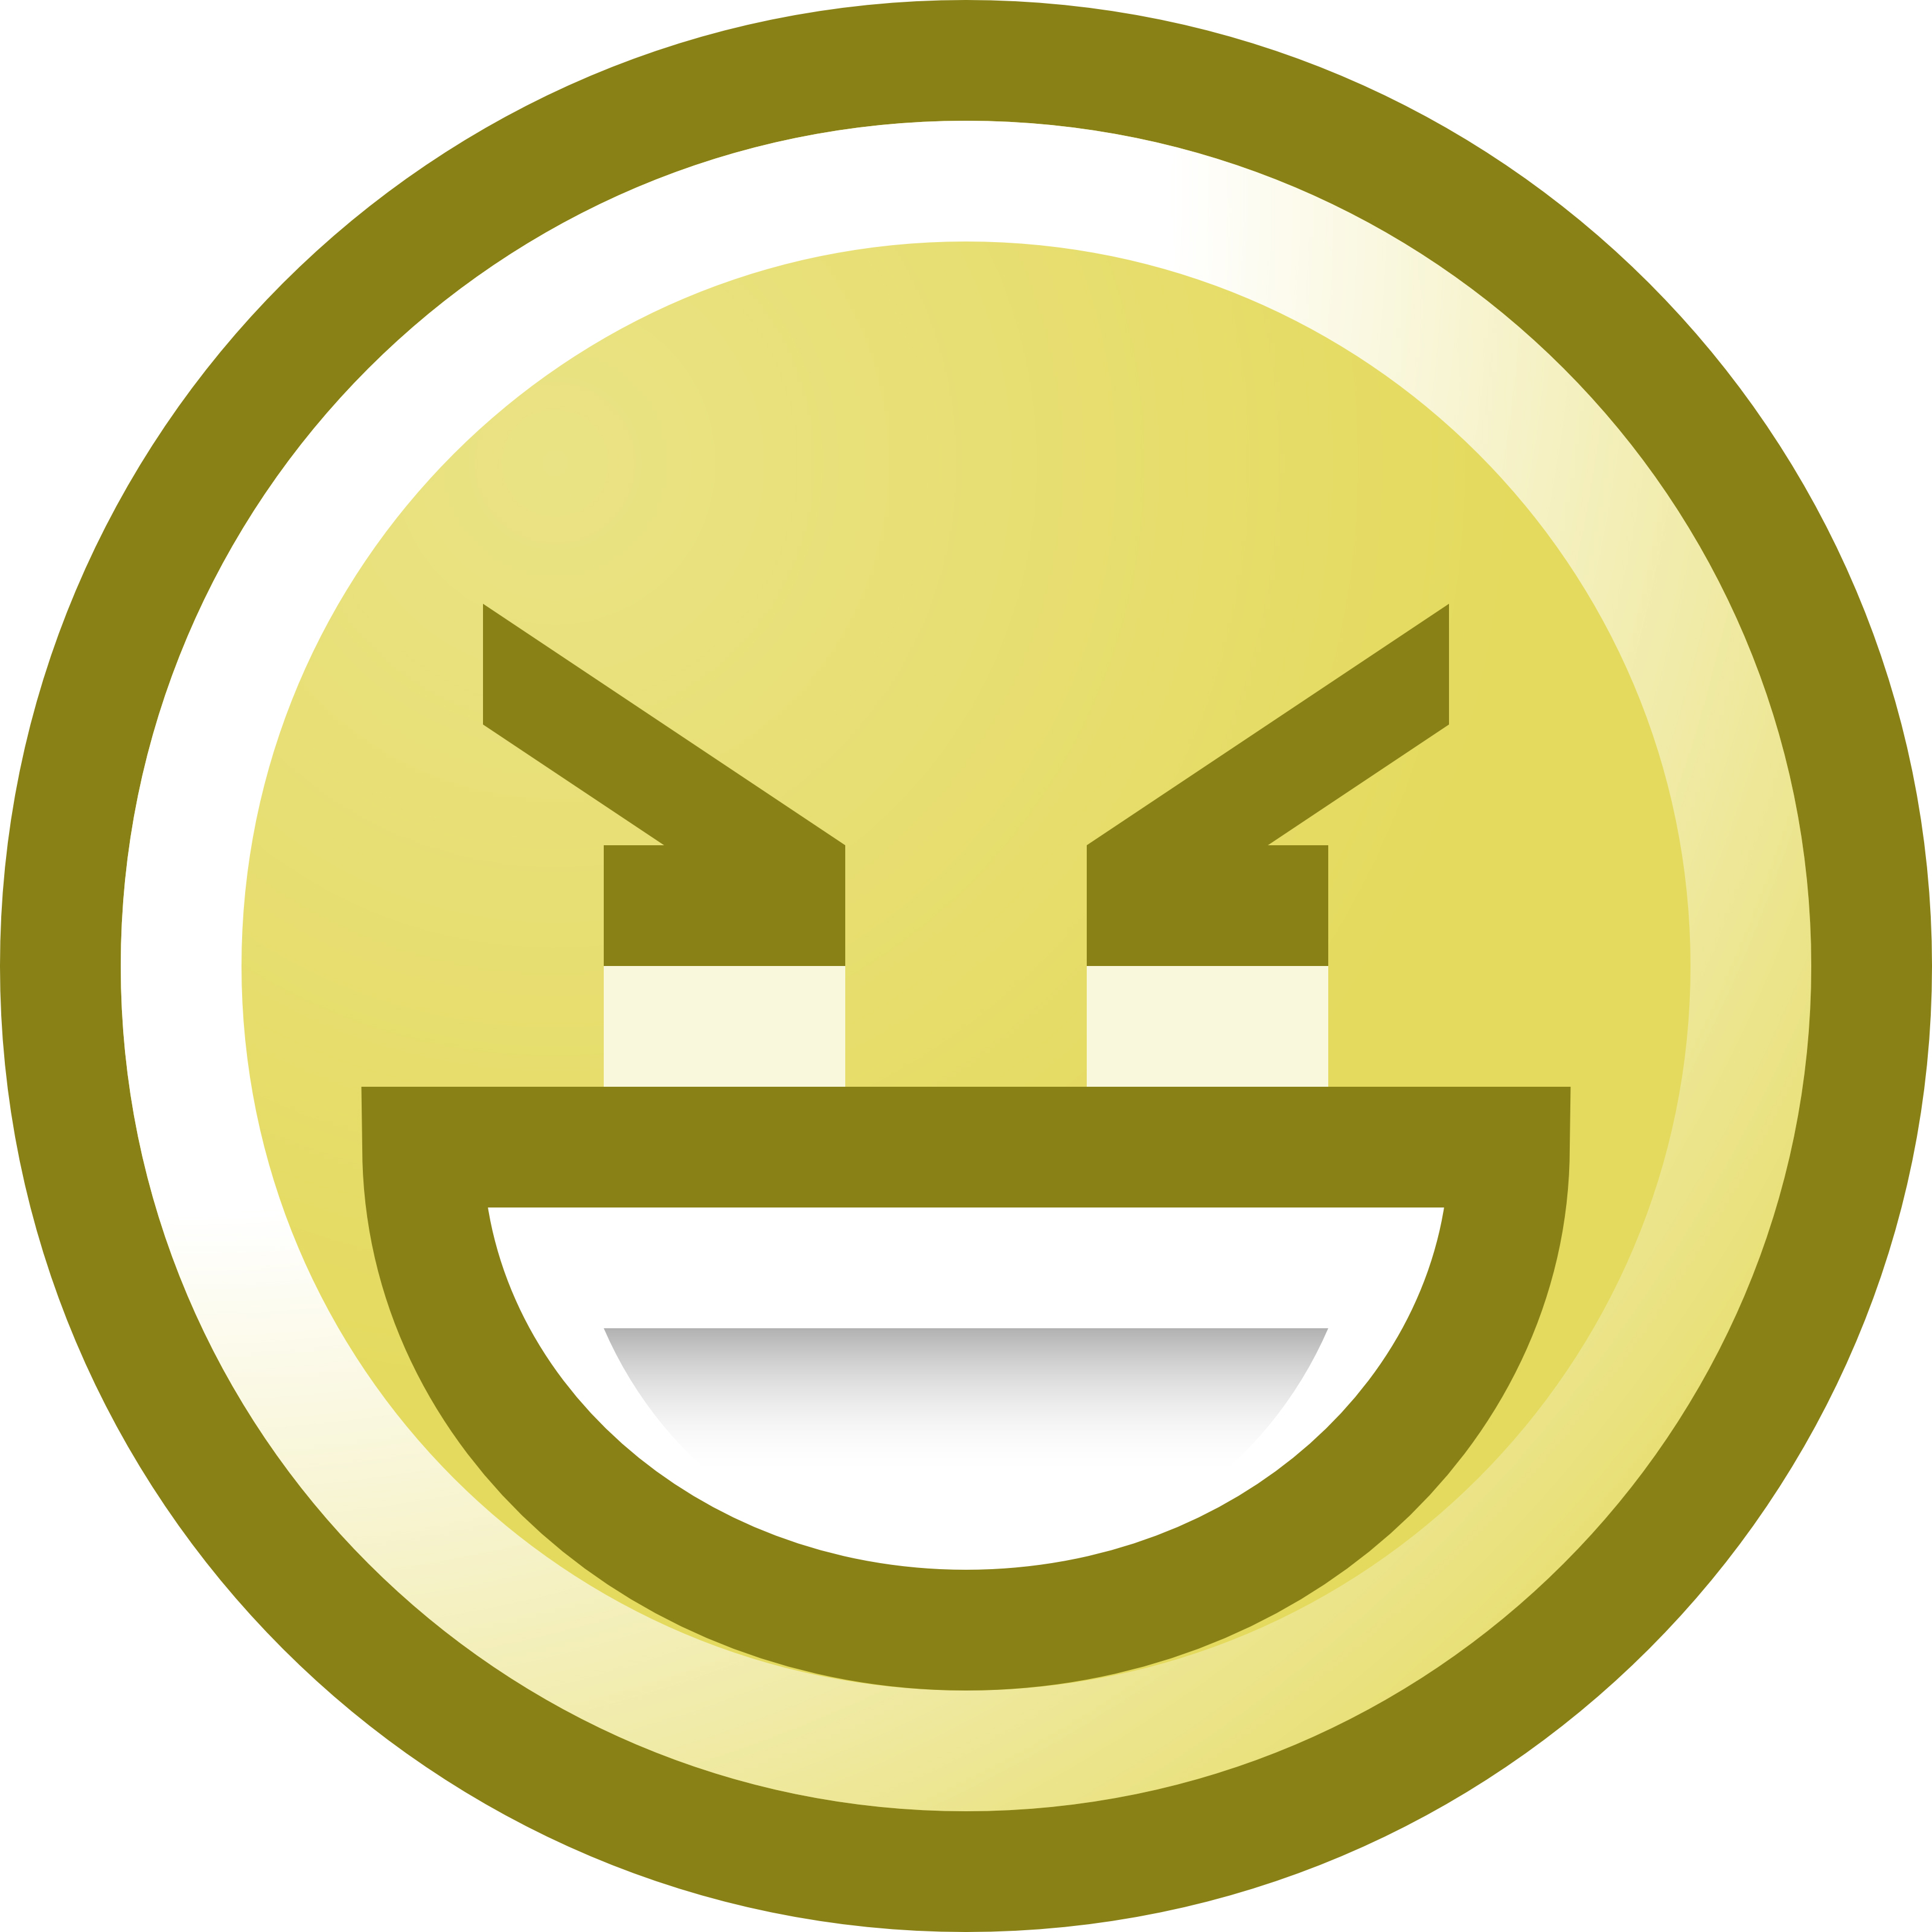 Smiley faces online dating